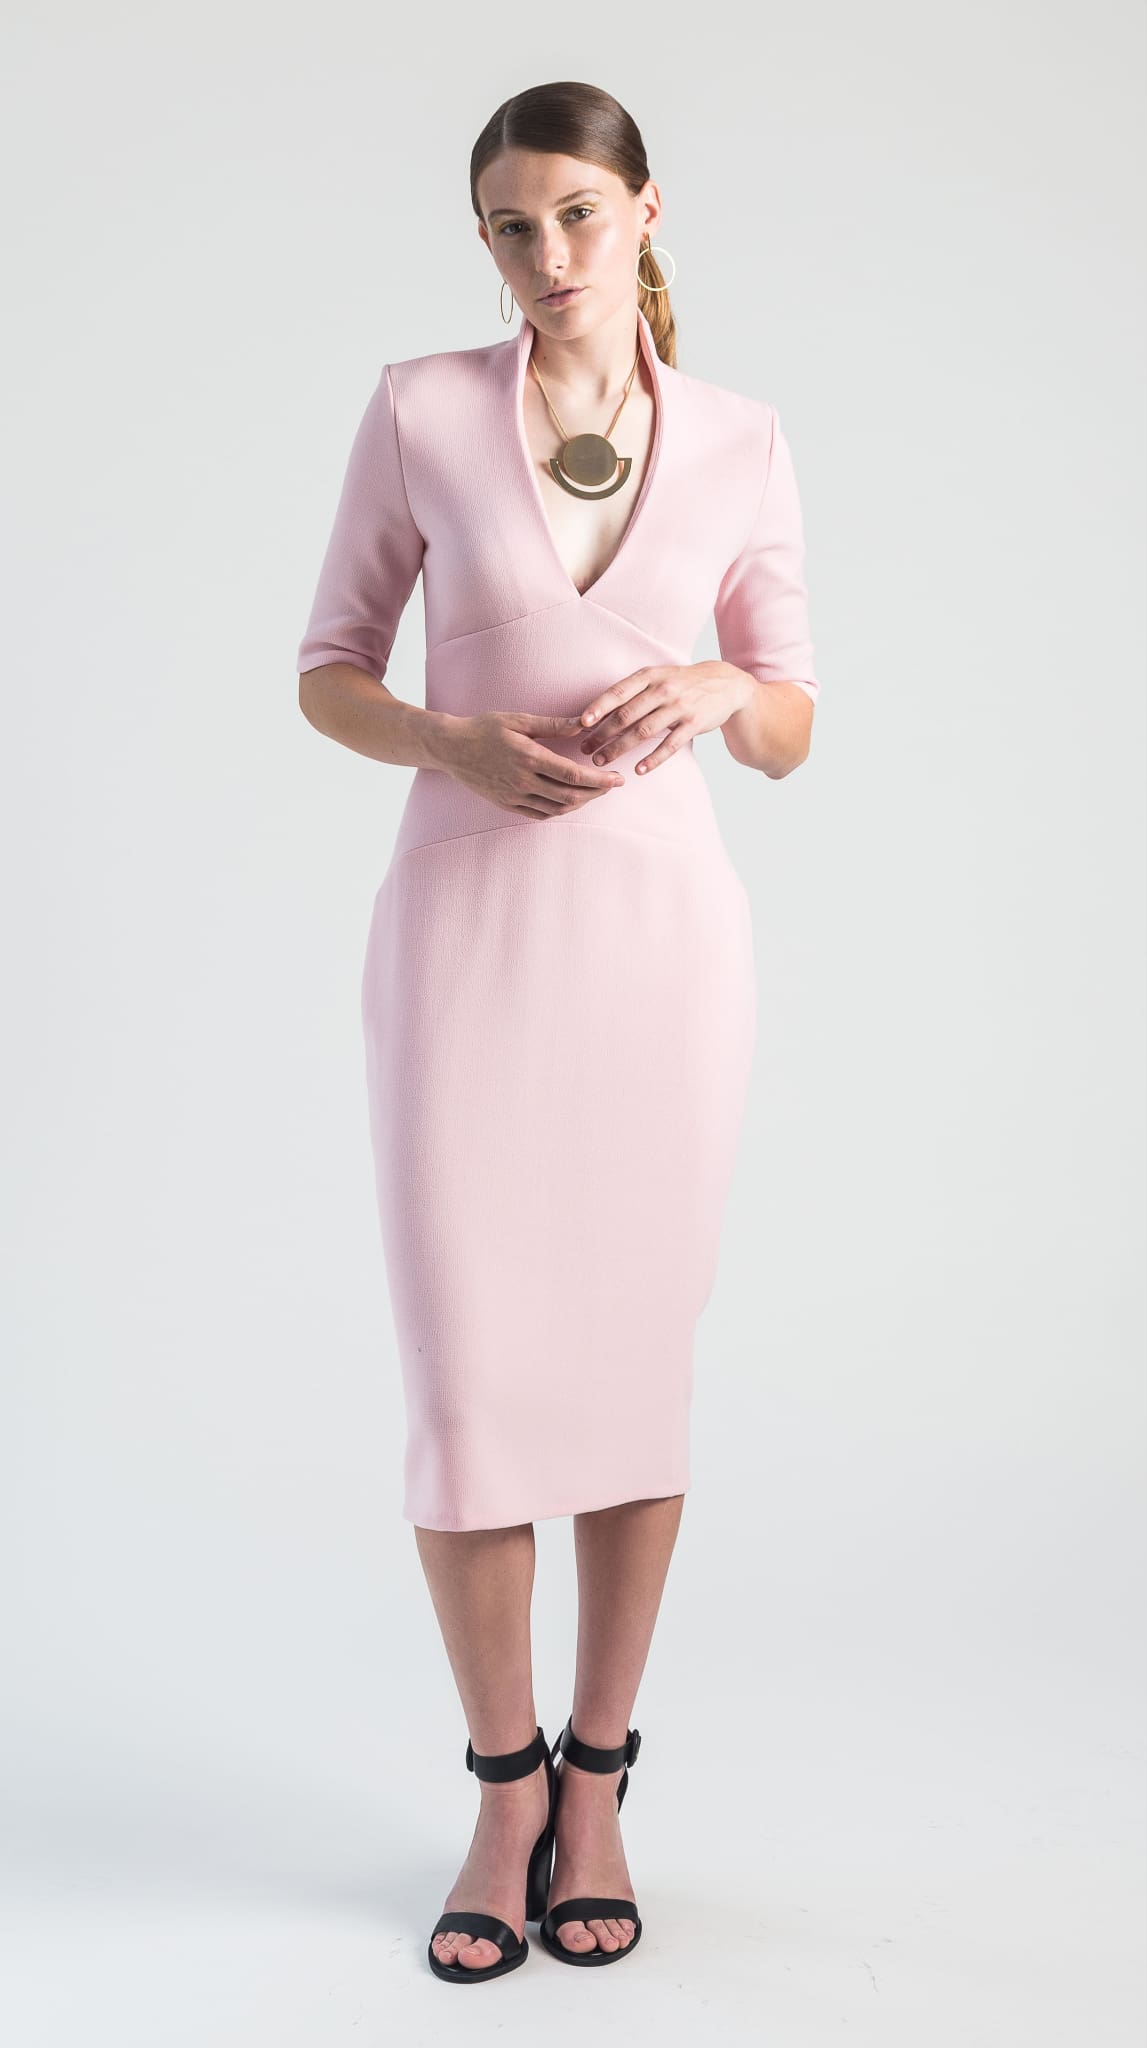 Pink Wool V Neck Venus Dress front by Varyform for Nineteenth Amendment